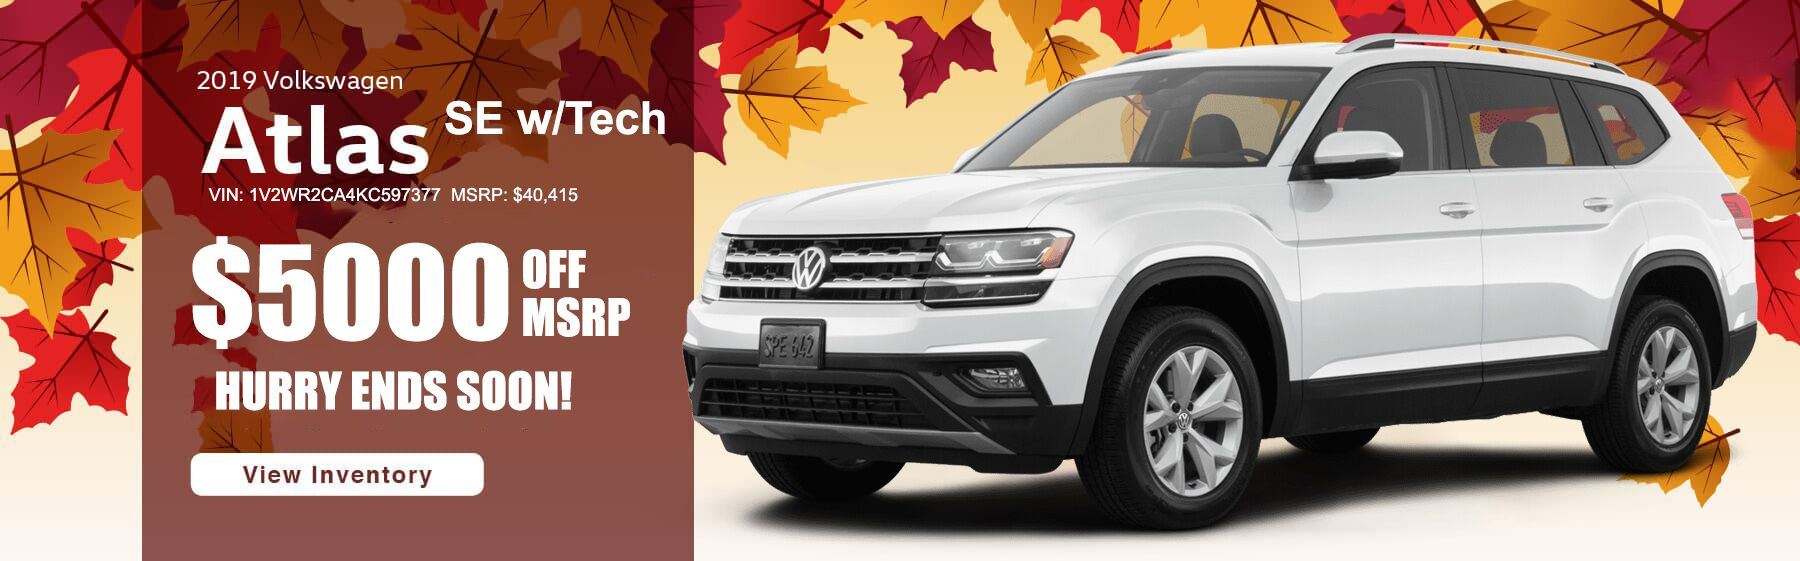 Used Cars Chattanooga >> Volkswagen Dealership Chattanooga Tn Used Cars Village